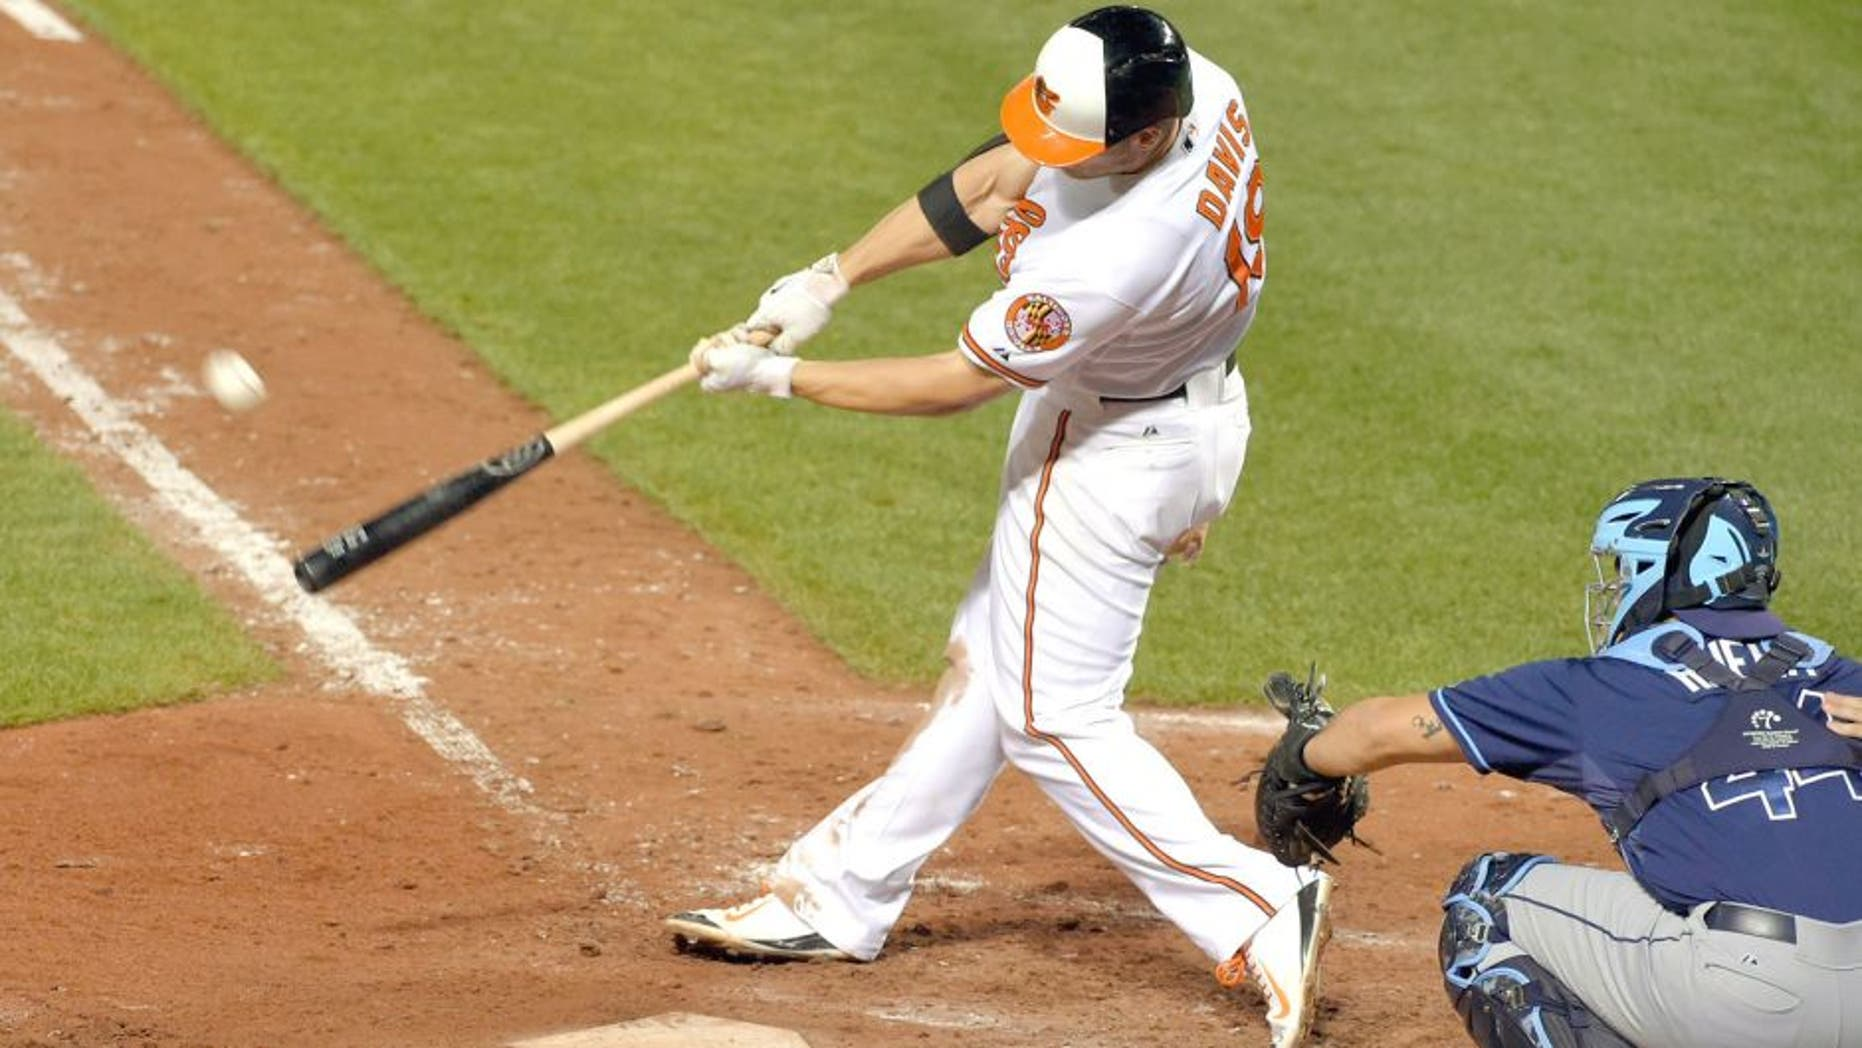 The Baltimore Orioles' Chris Davis crushes a solo home run against the Tampa Bay Rays at Oriole Park at Camden Yards in Baltimore on Wednesday, Sept. 2, 2015. The Orioles won, 7-6, in 11 innings on Davis' home run. (Karl Merton Ferron/Baltimore Sun/TNS via Getty Images)